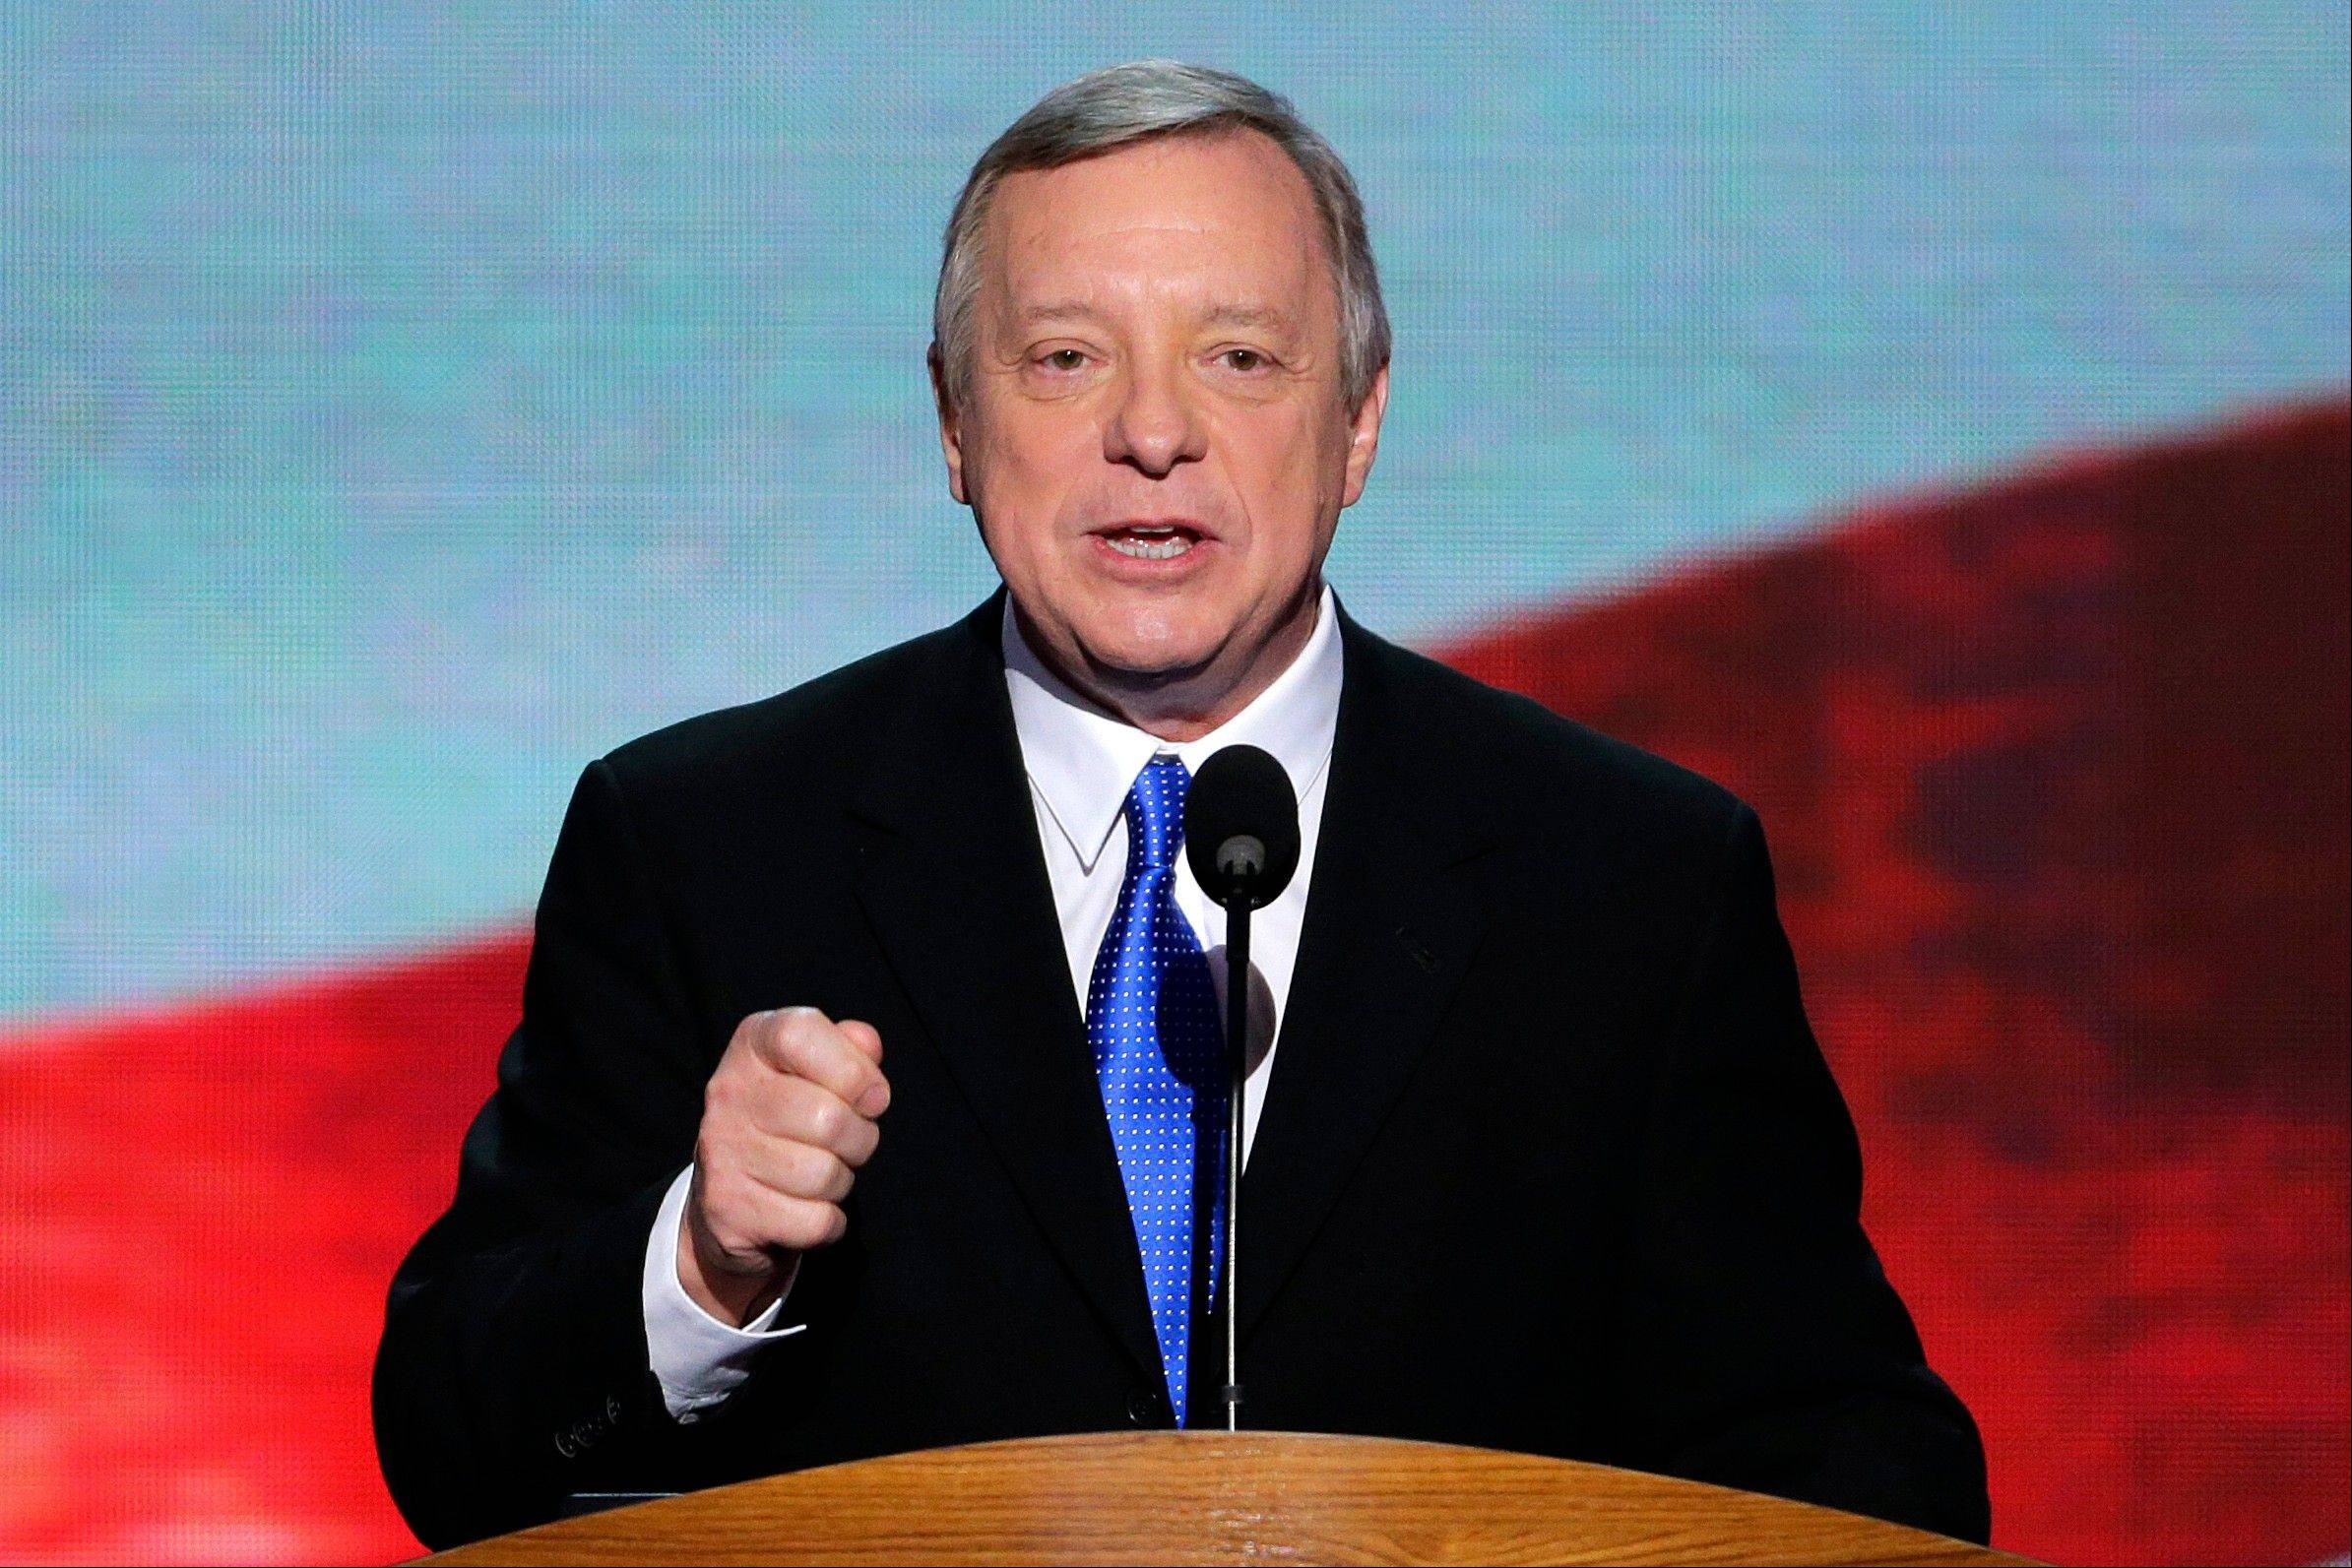 Sen. Dick Durbin of Illinois addresses the Democratic National Convention in Charlotte, N.C., on Thursday.